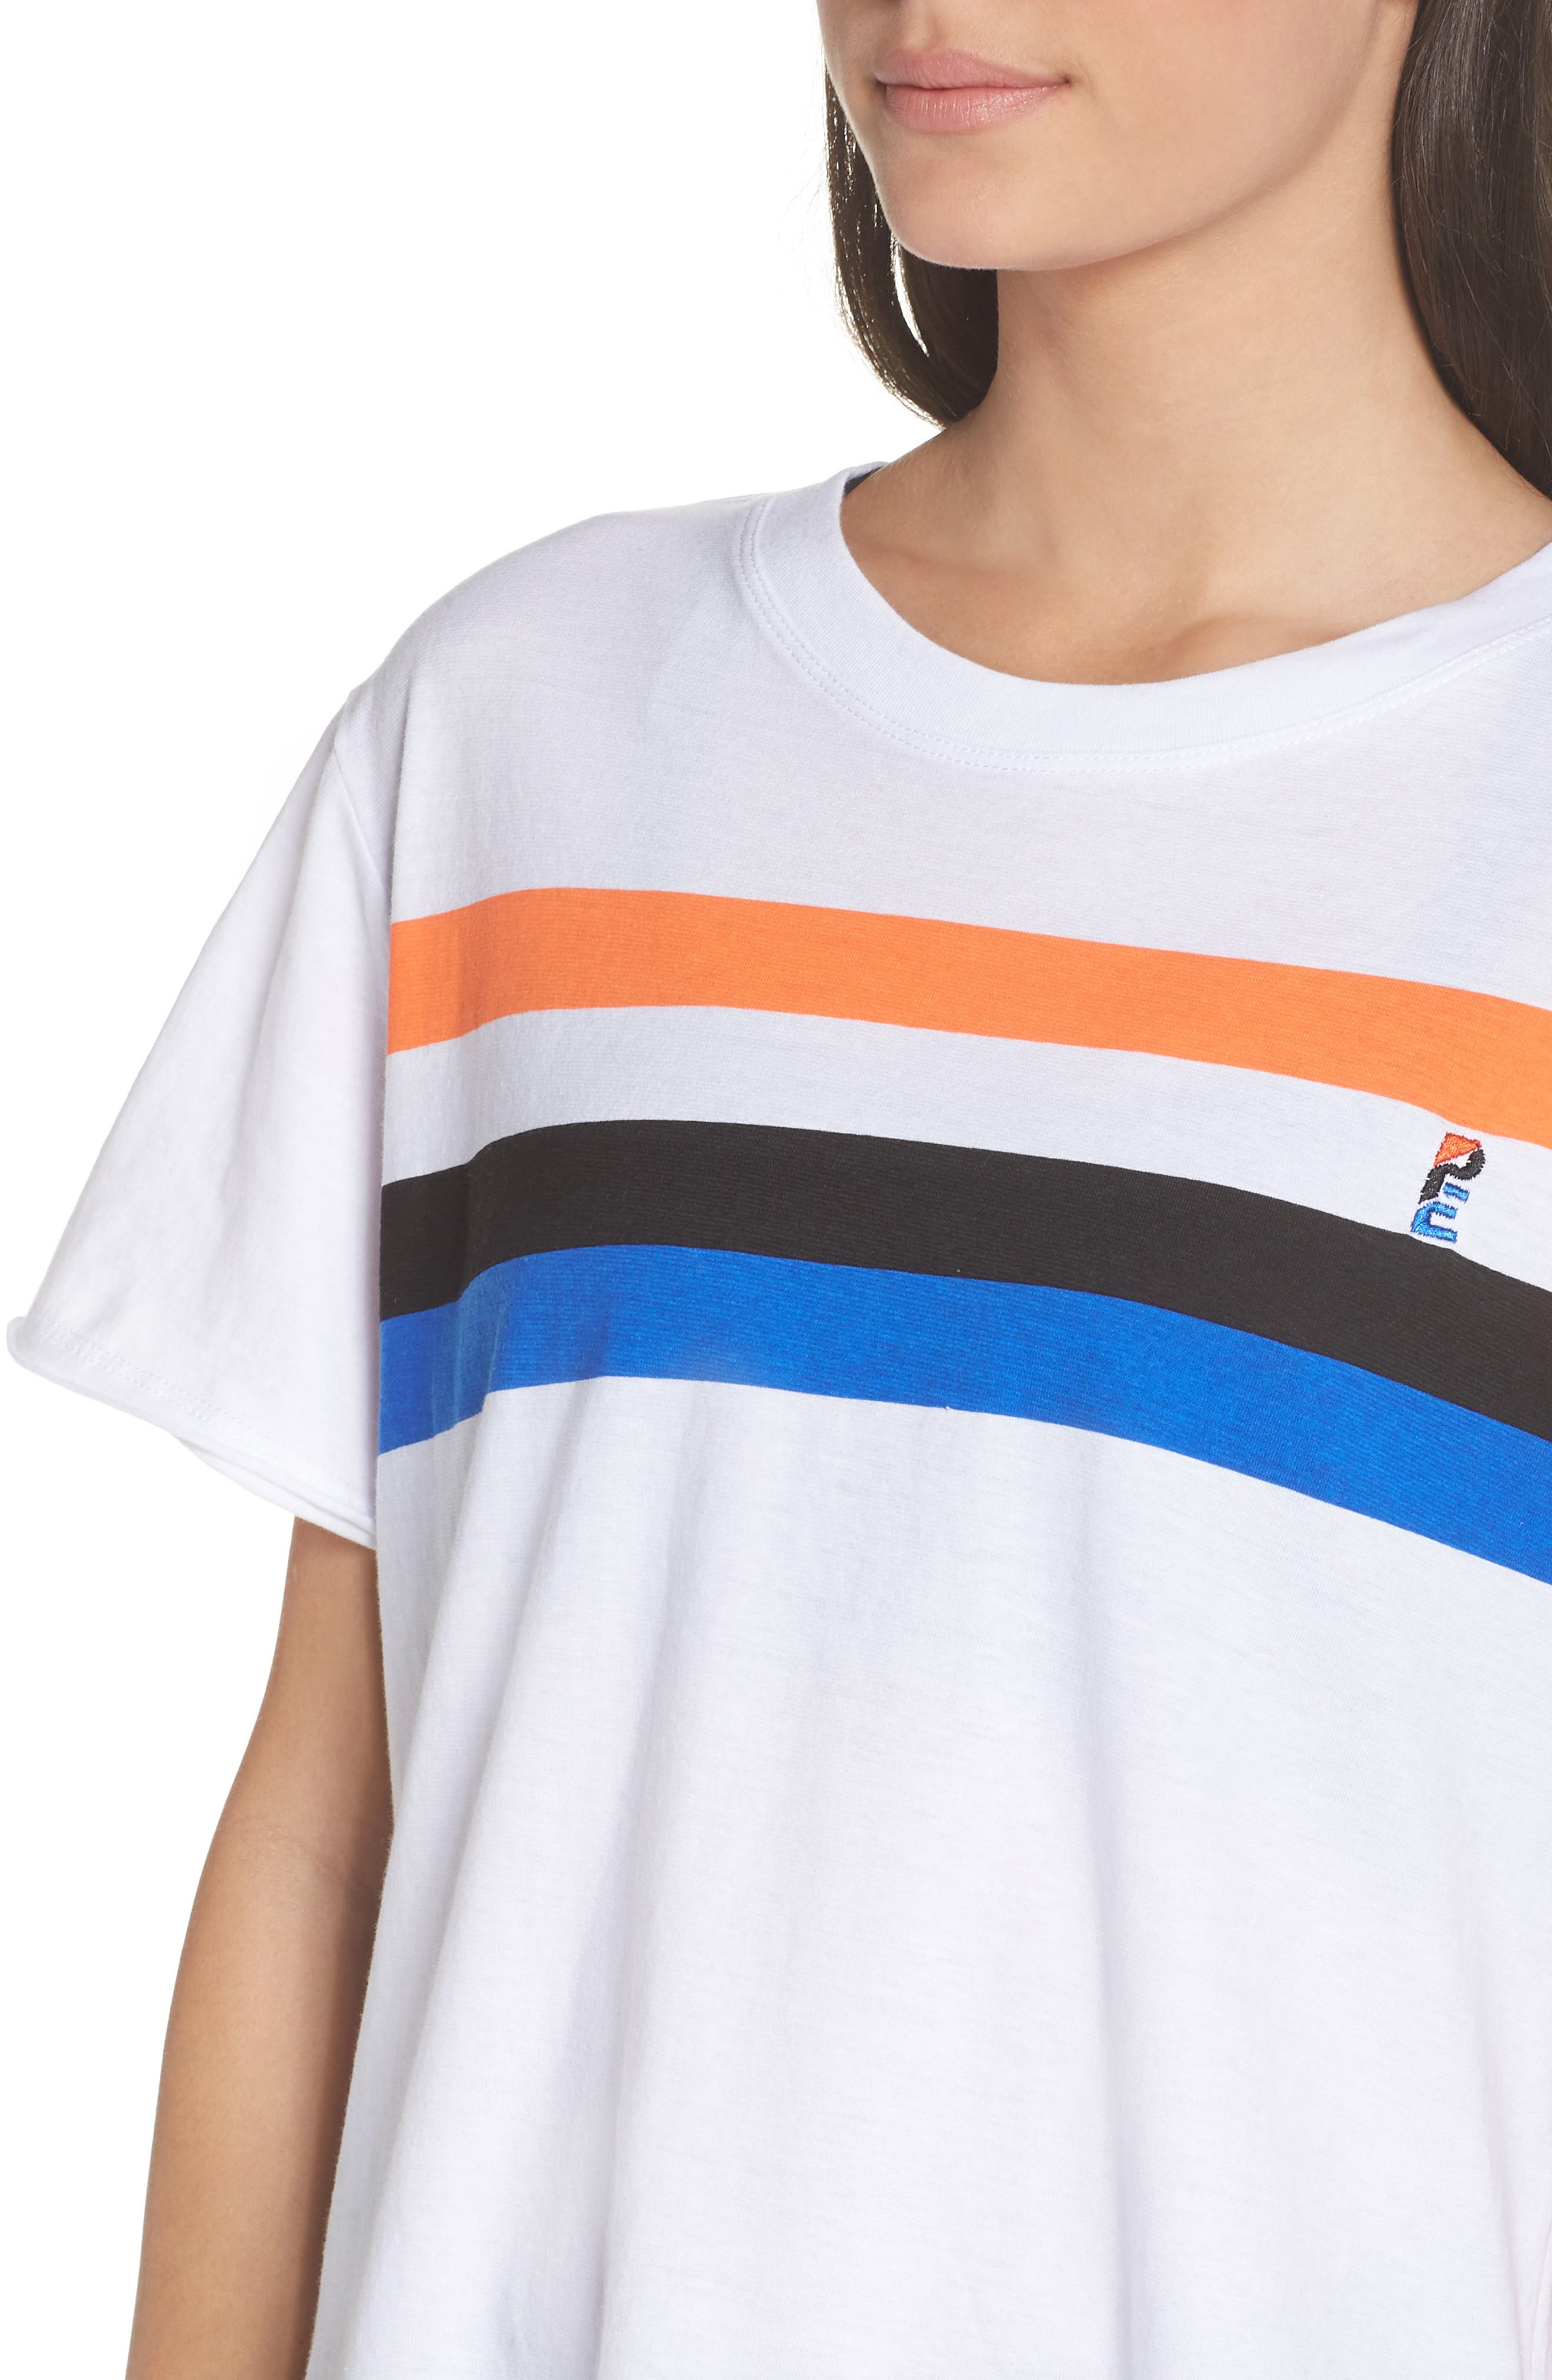 Middle Distance Tee,                             Alternate thumbnail 4, color,                             100